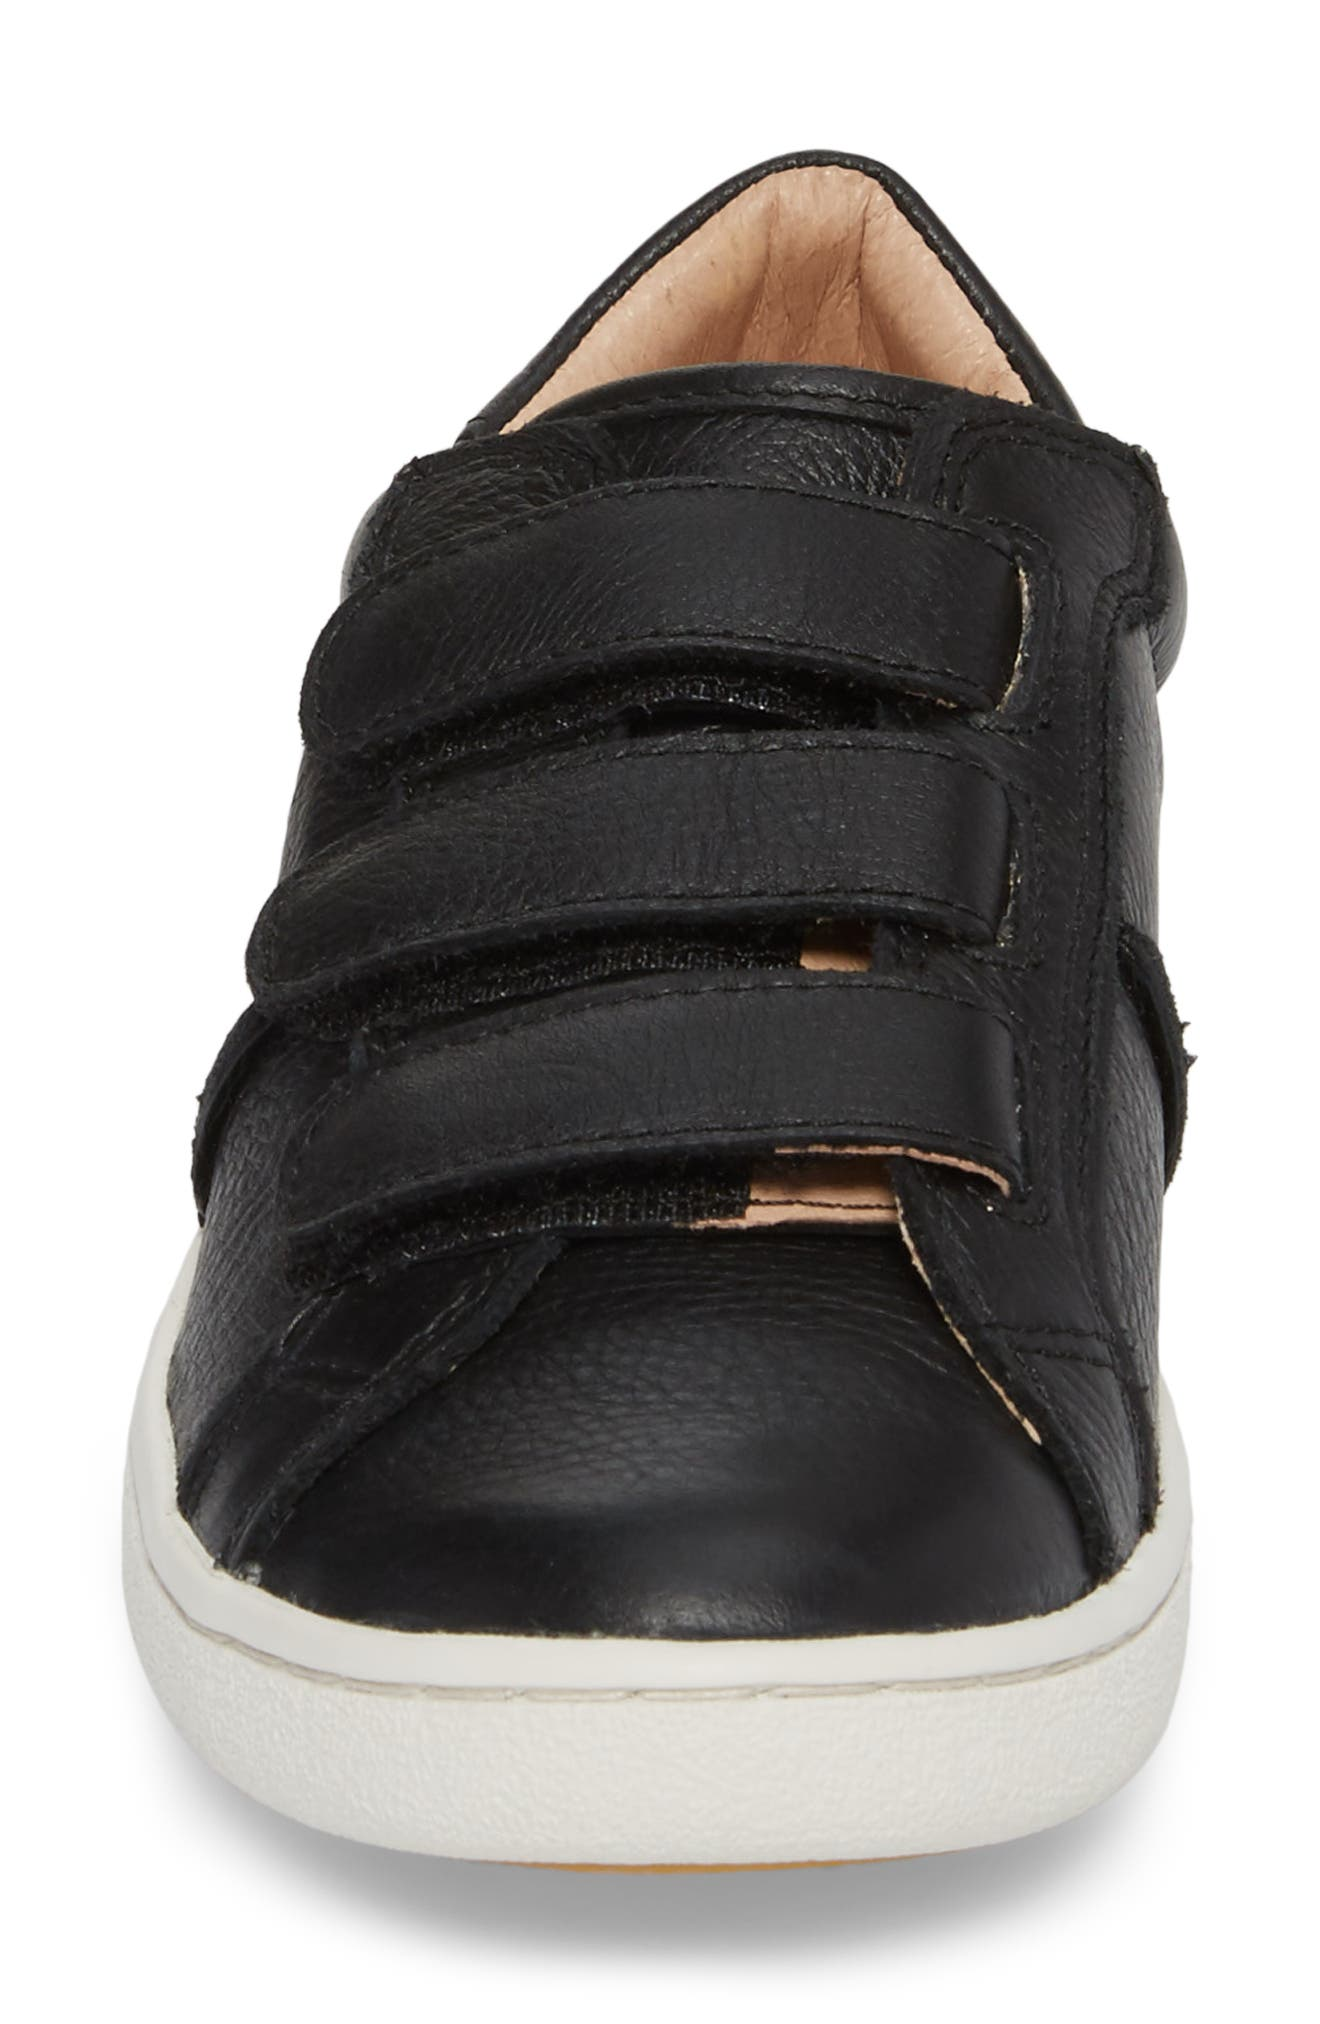 Alix Sneaker,                             Alternate thumbnail 4, color,                             BLACK LEATHER